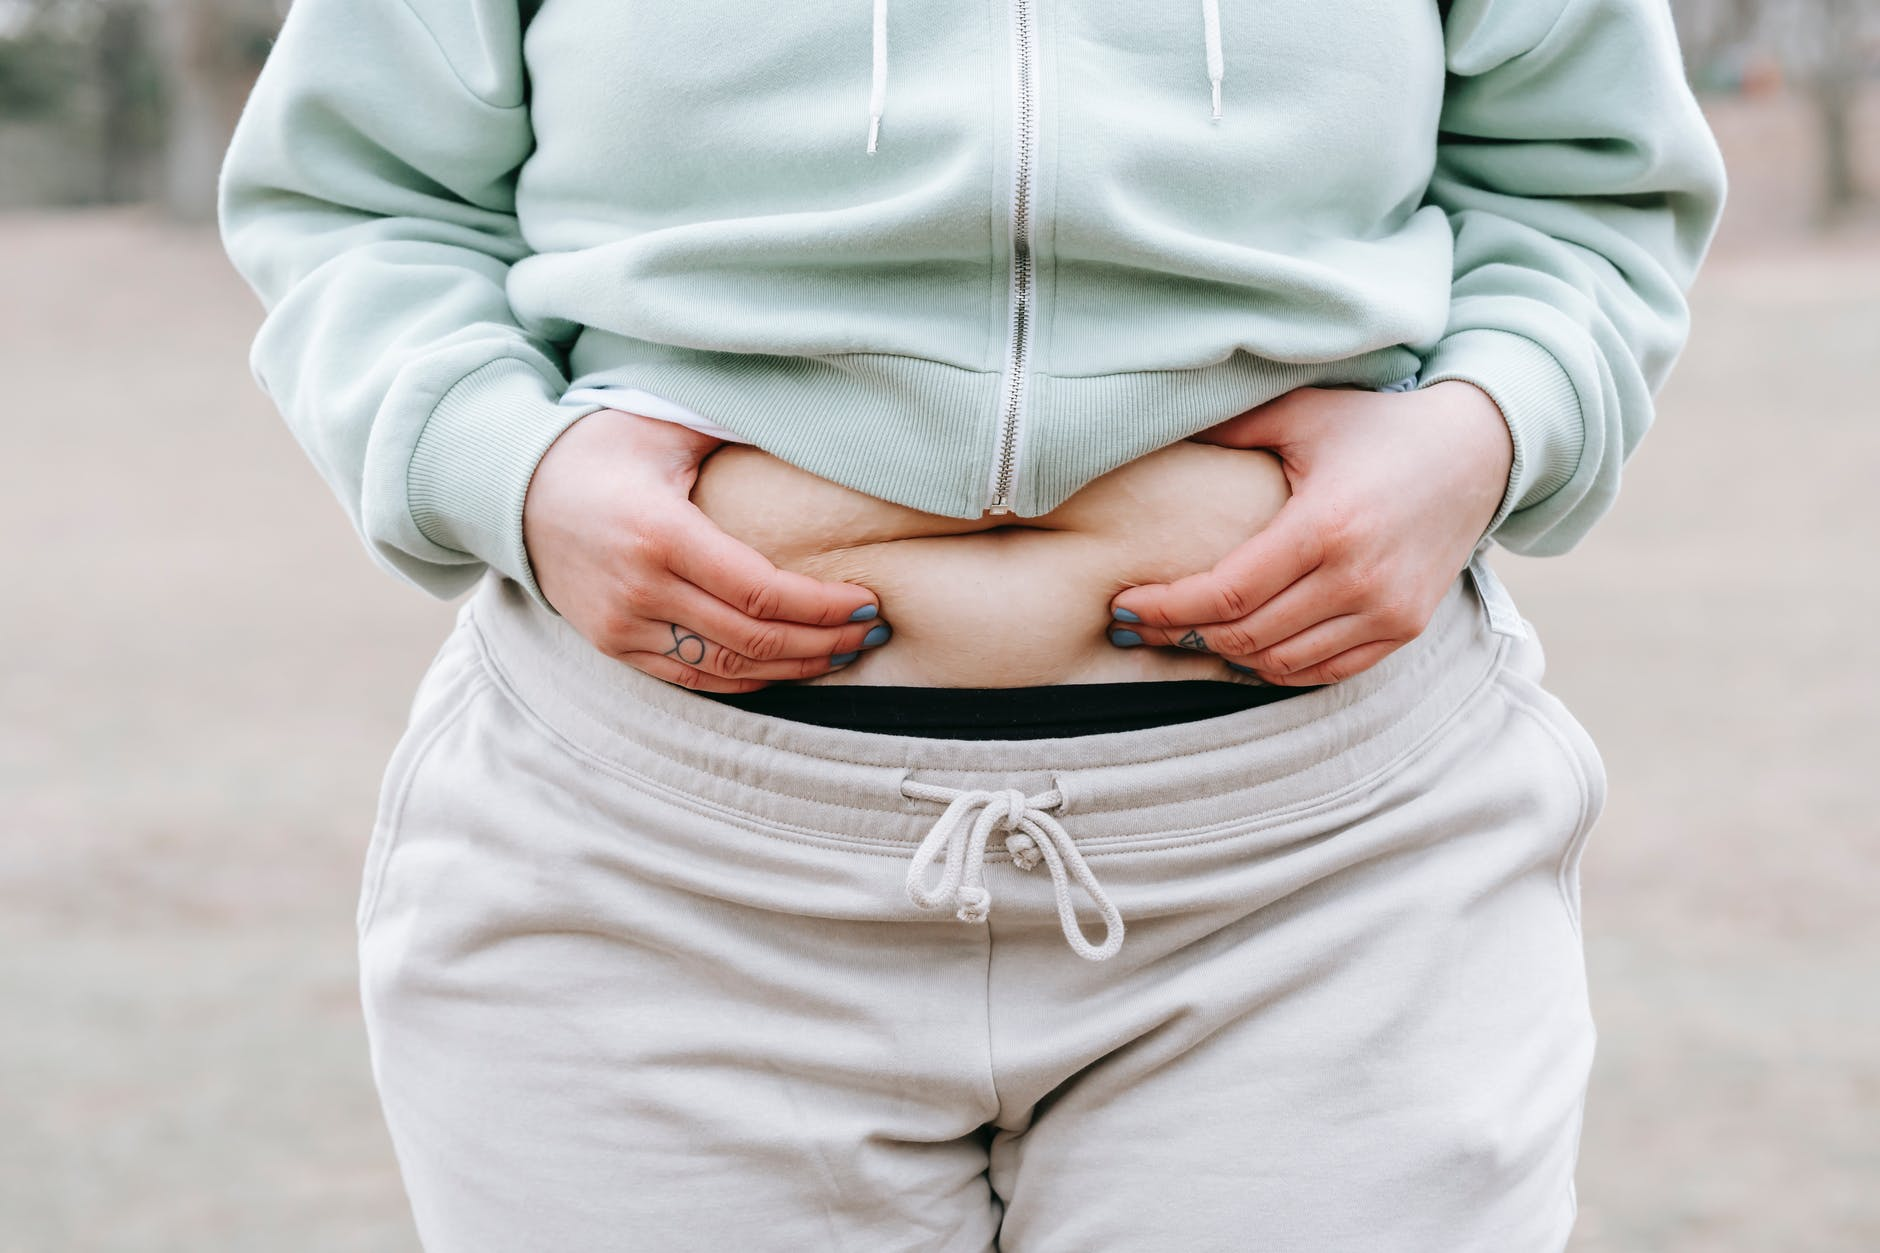 crop unrecognizable plump woman demonstrating fat on belly